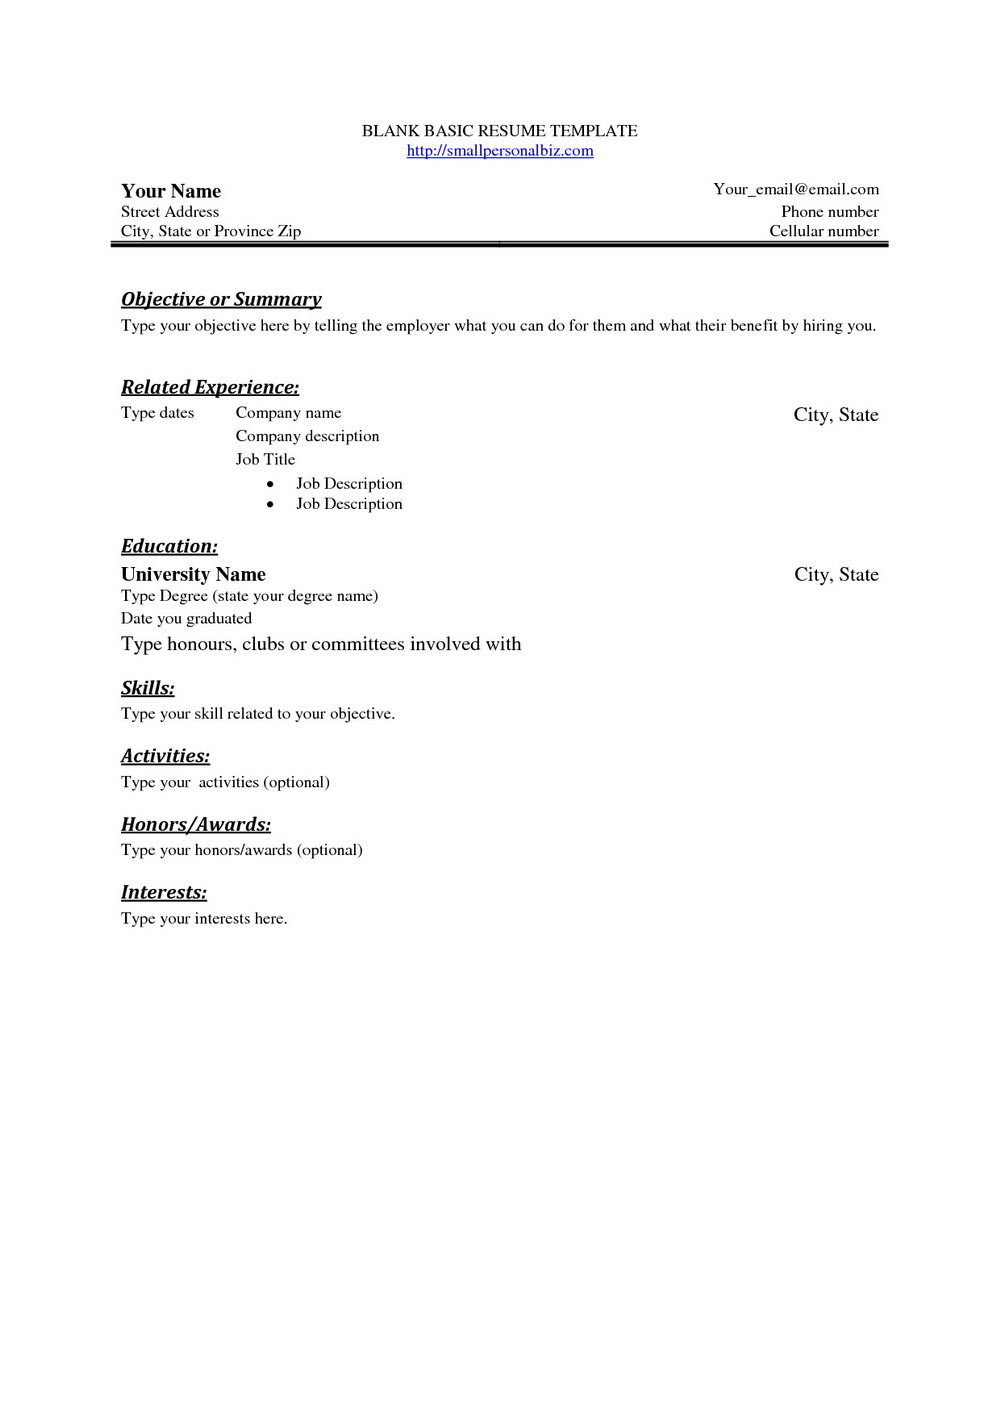 Blank Resume Format For Job